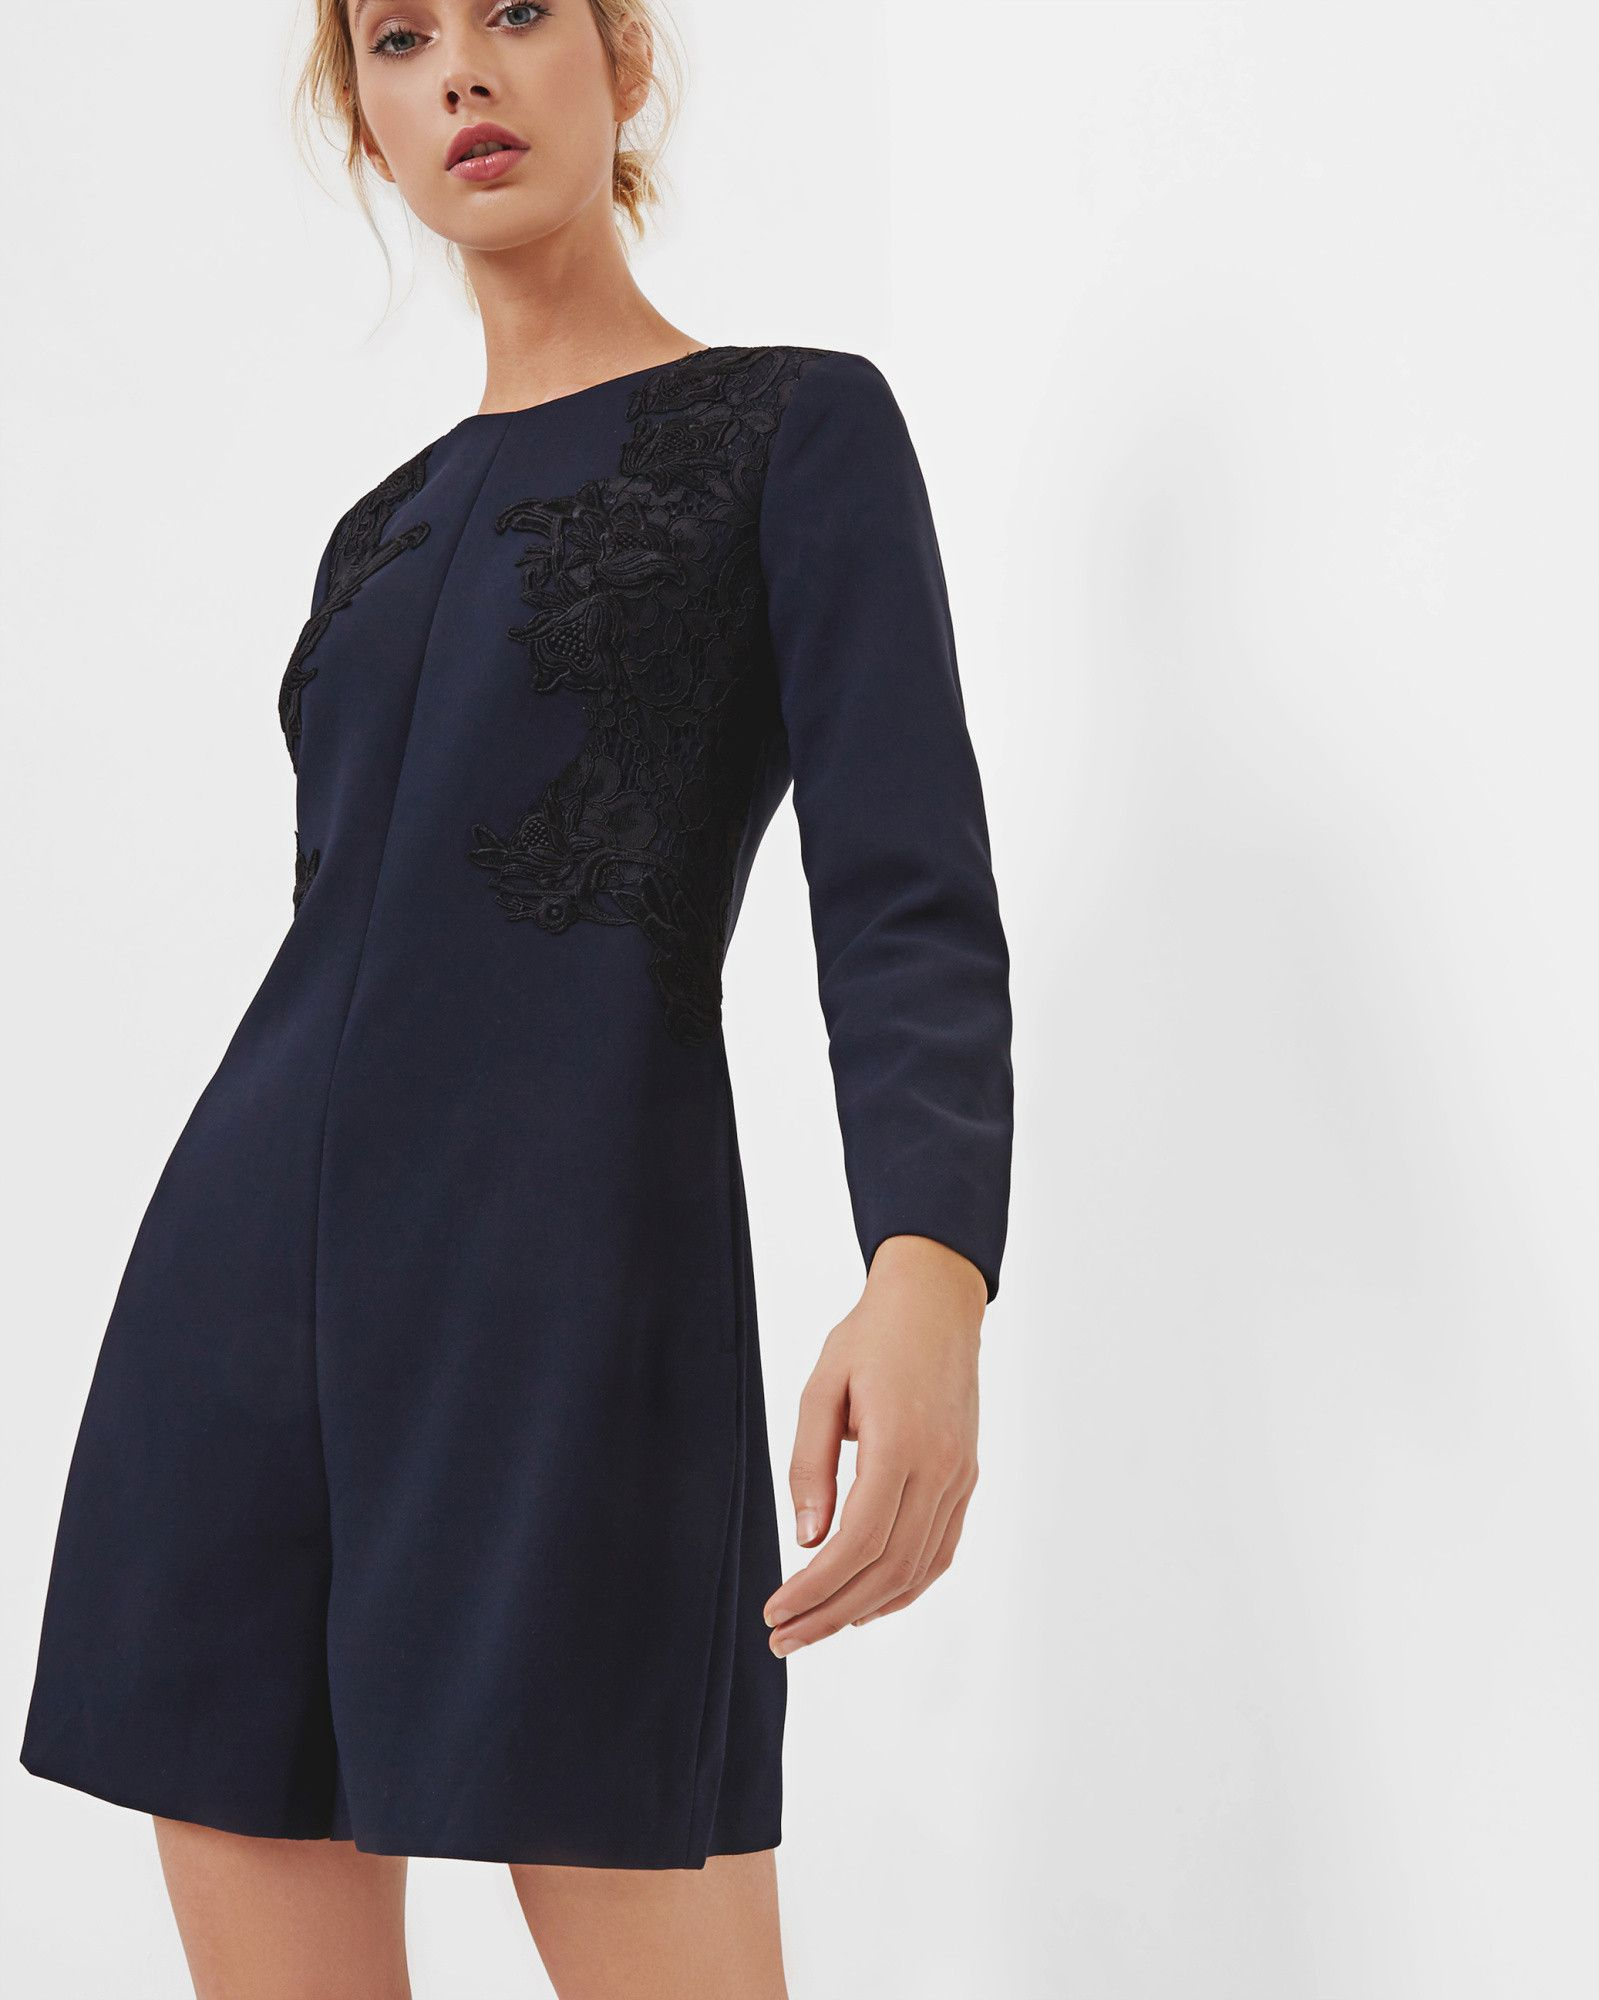 7f1193adbf08b8 Embroidered playsuit - Navy